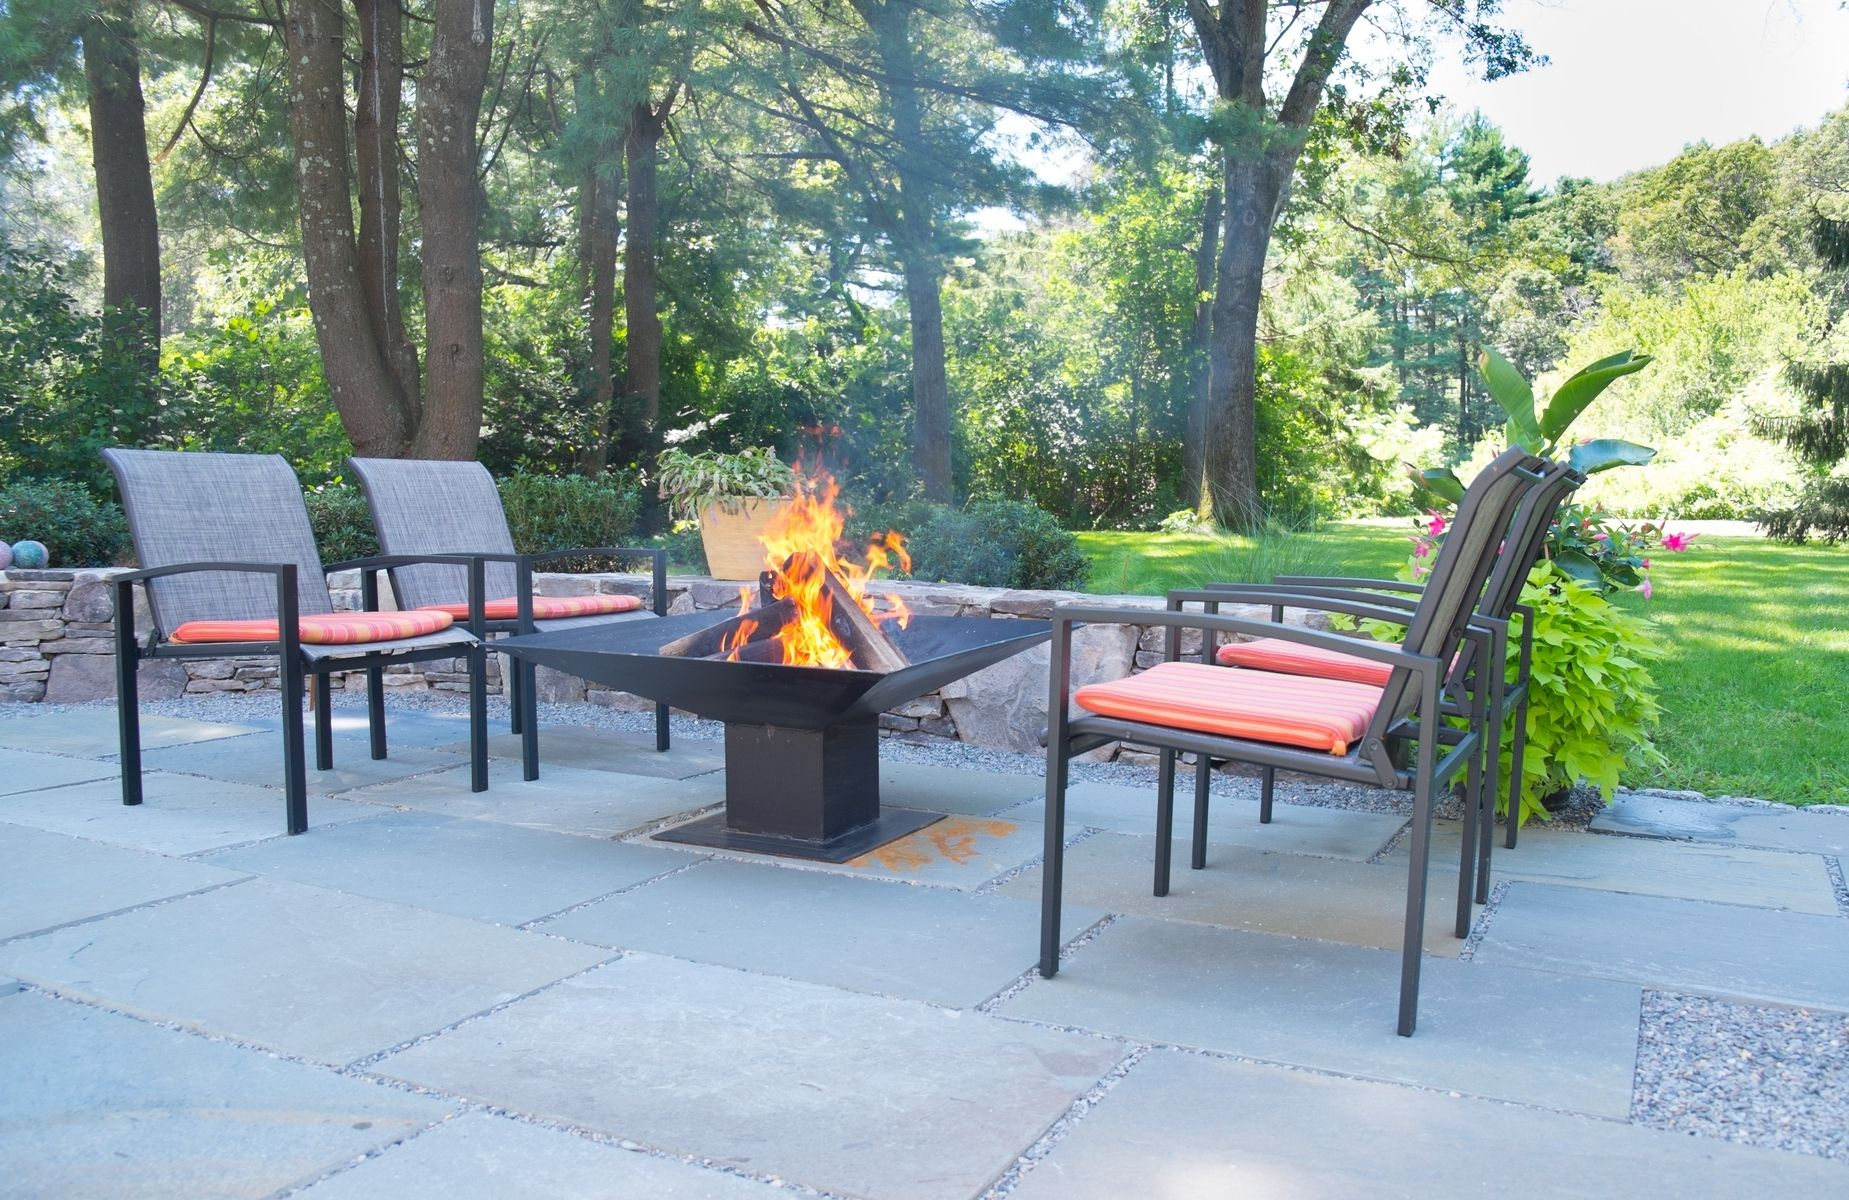 Buy A Handmade Custom Built Fire Pit Fire Tray Made To